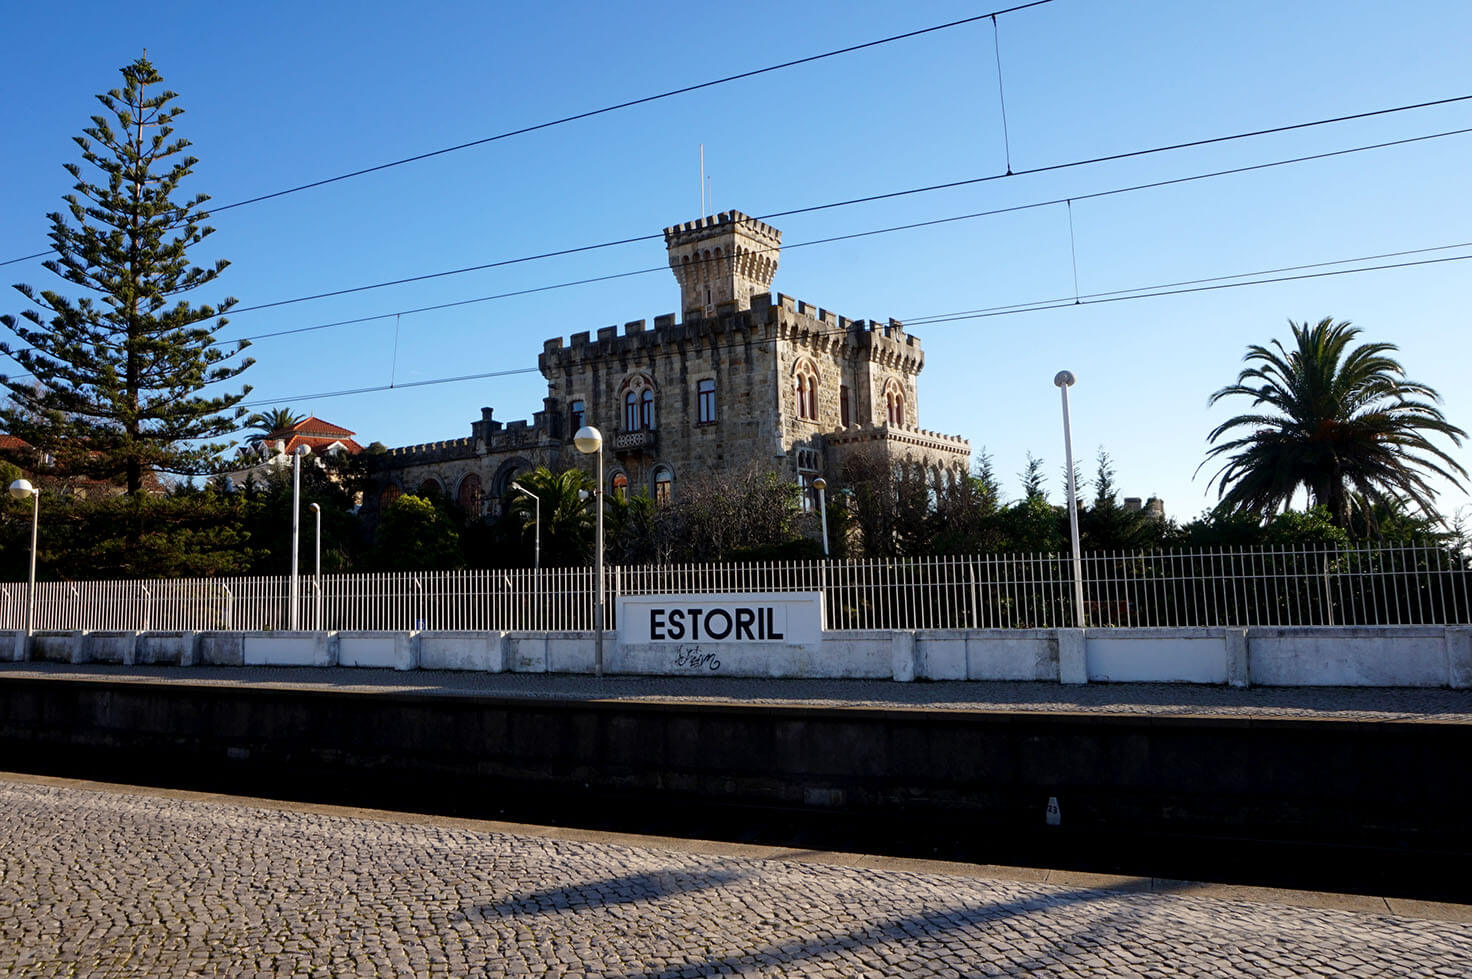 Getting to Cascais